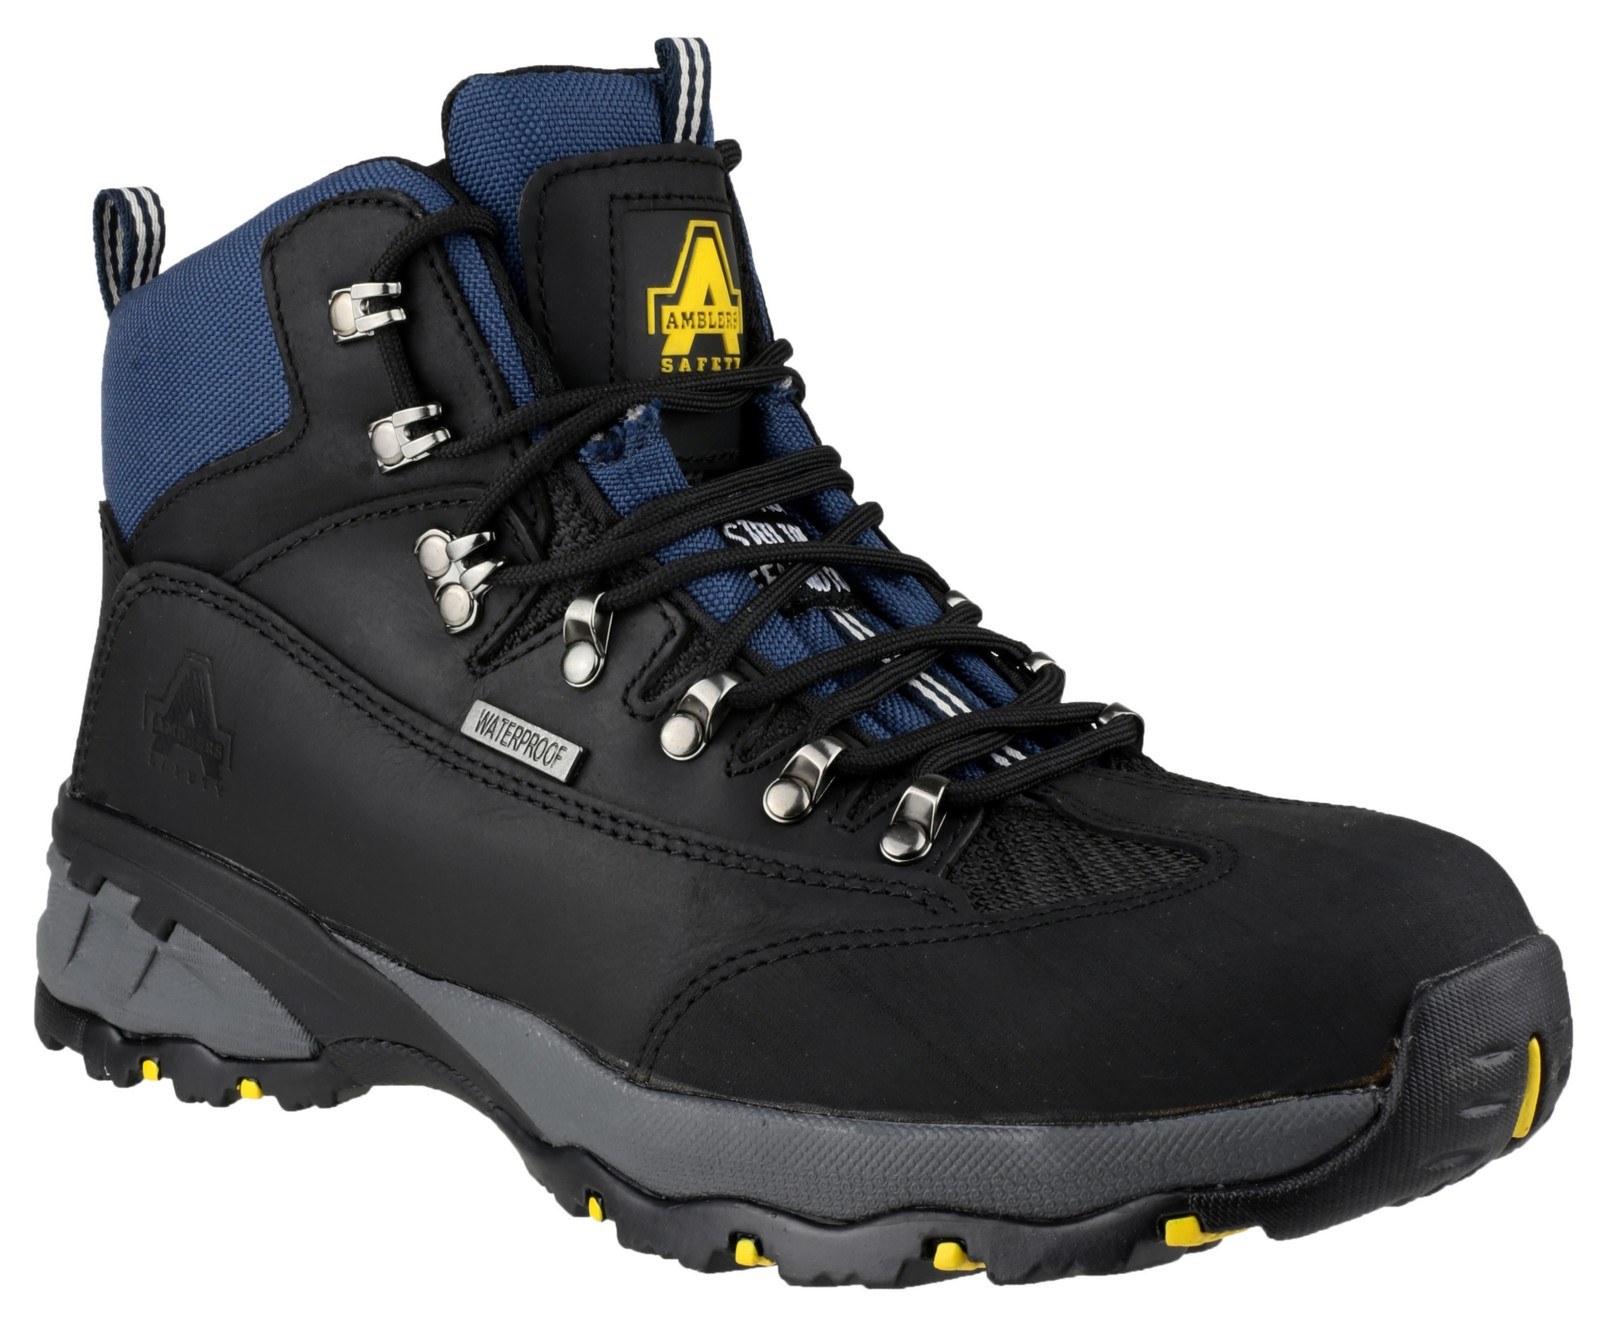 2d1c1048722 Amblers Safety FS161 Men's Waterproof Boots